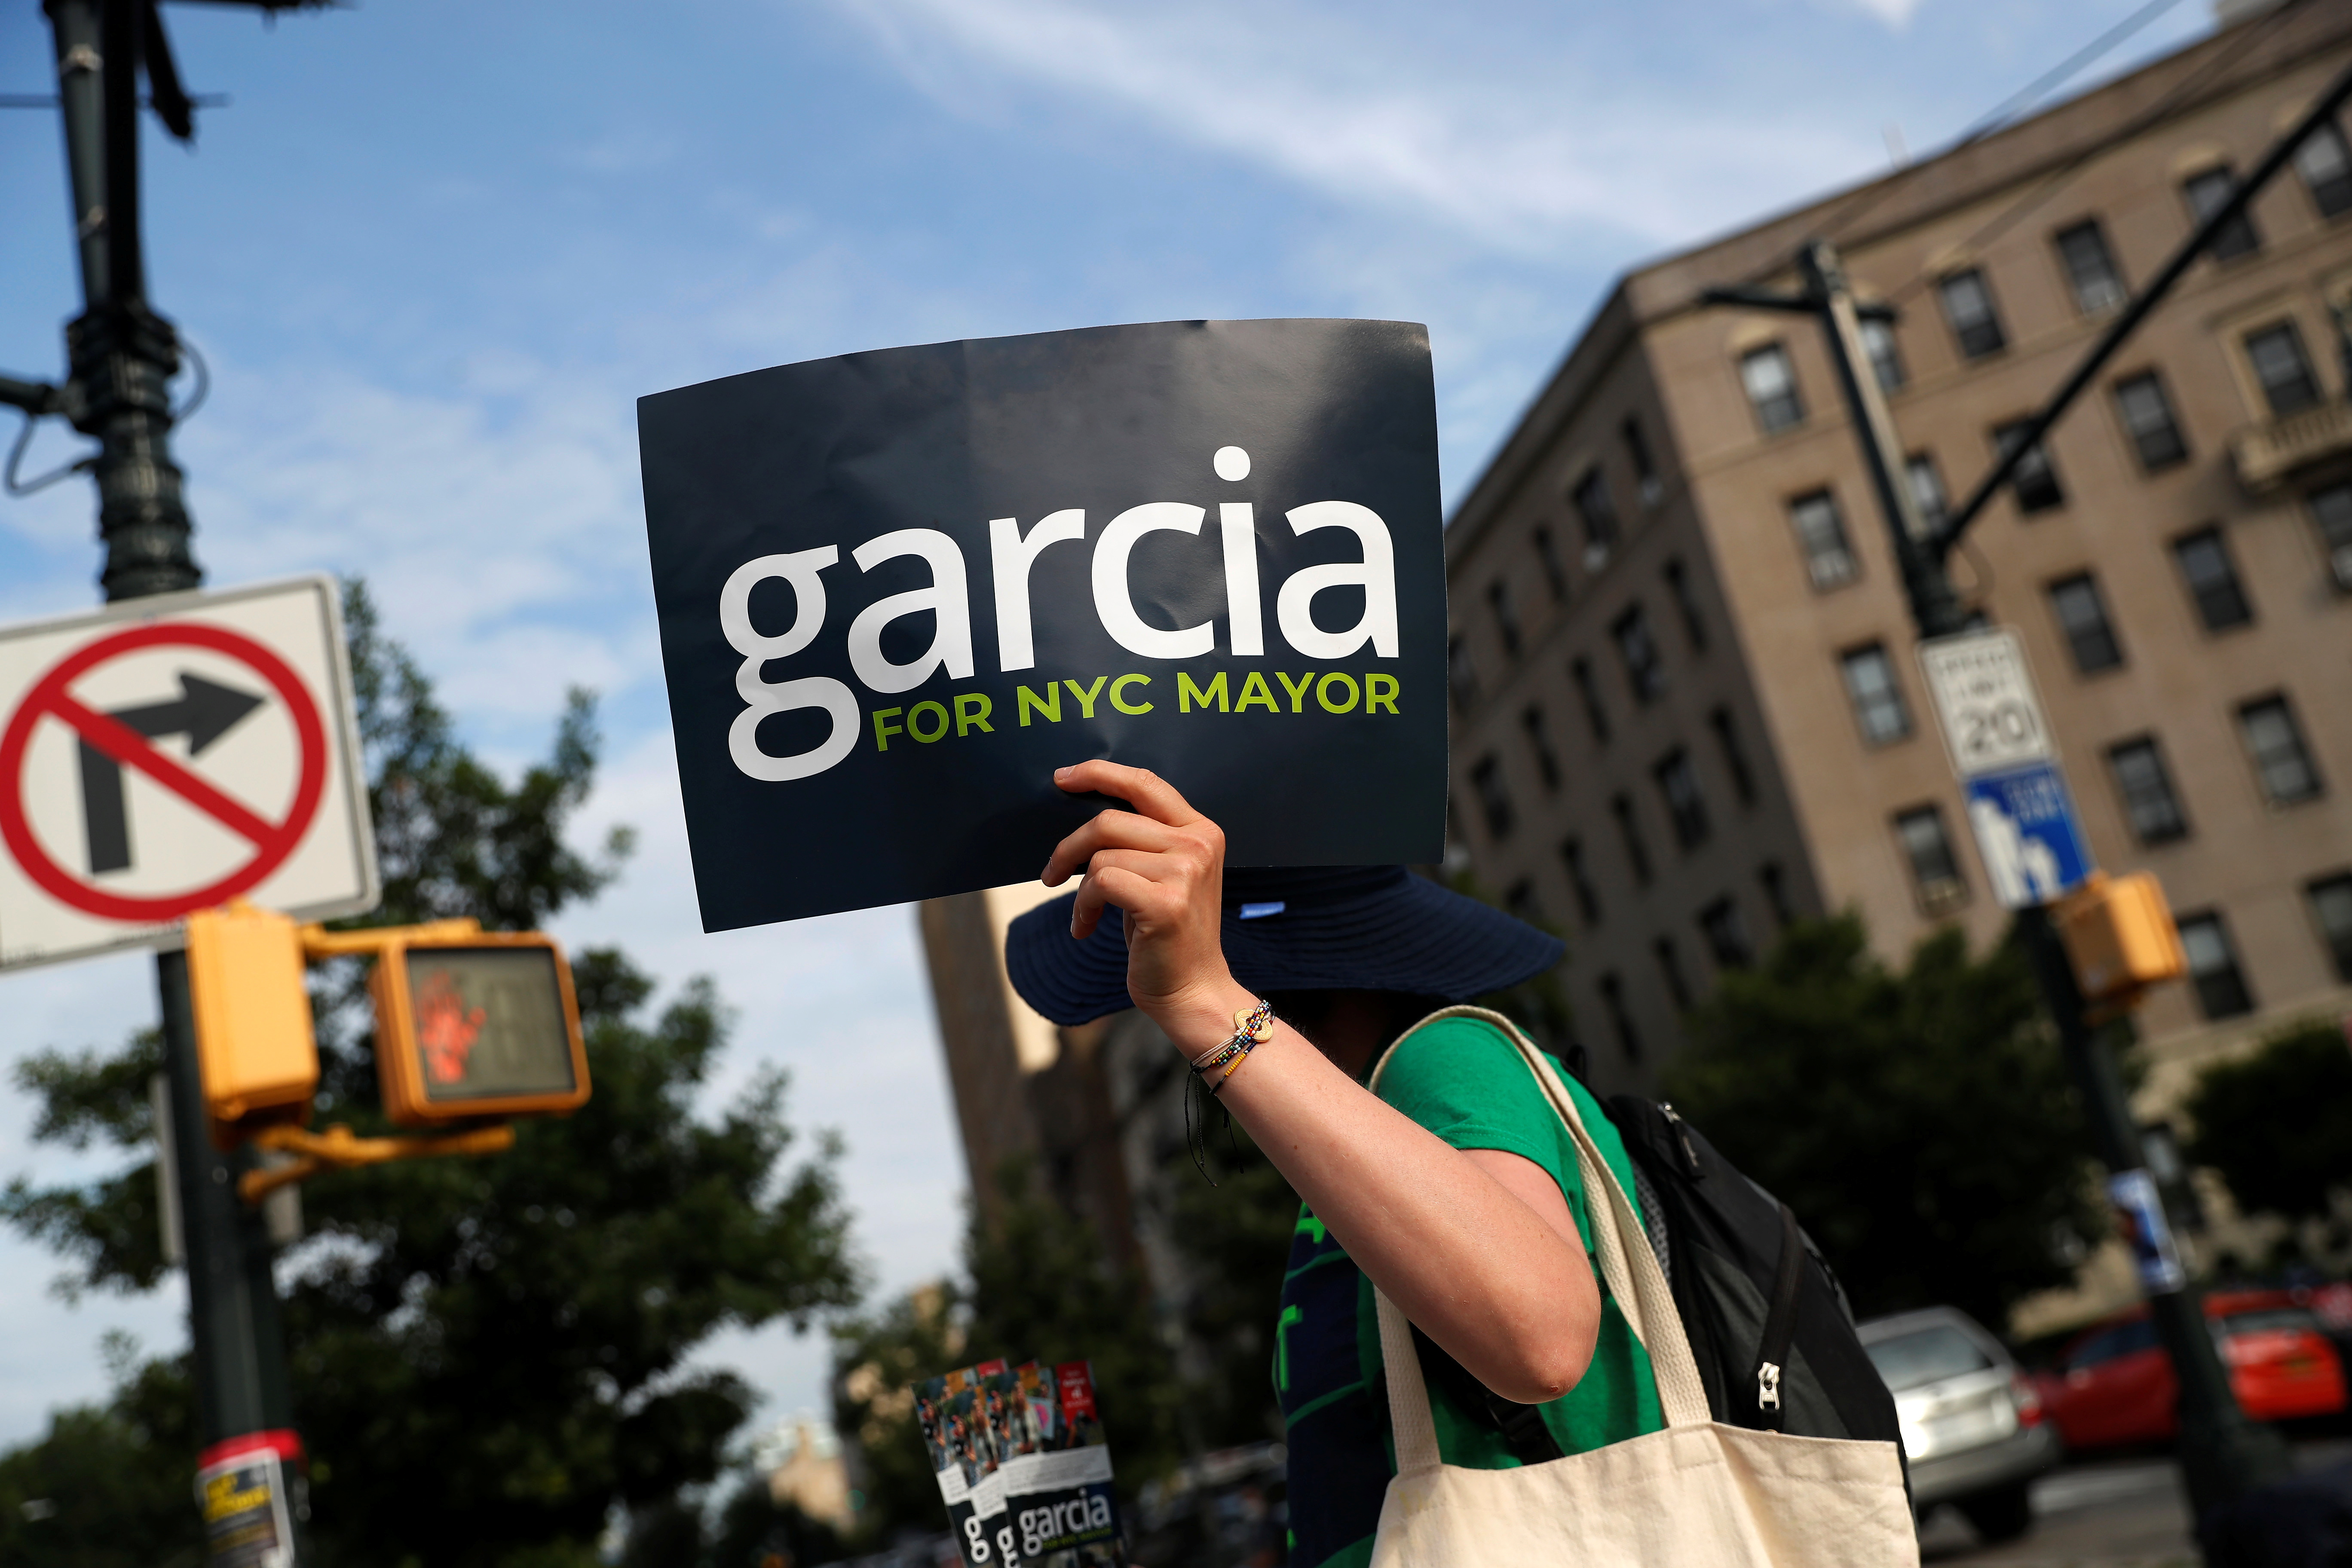 A supporter of Democratic candidate for New York City Mayor Kathryn Garcia holds a sign outside the Brooklyn Museum voting station in New York City, U.S., June 22, 2021. REUTERS/Shannon Stapleton